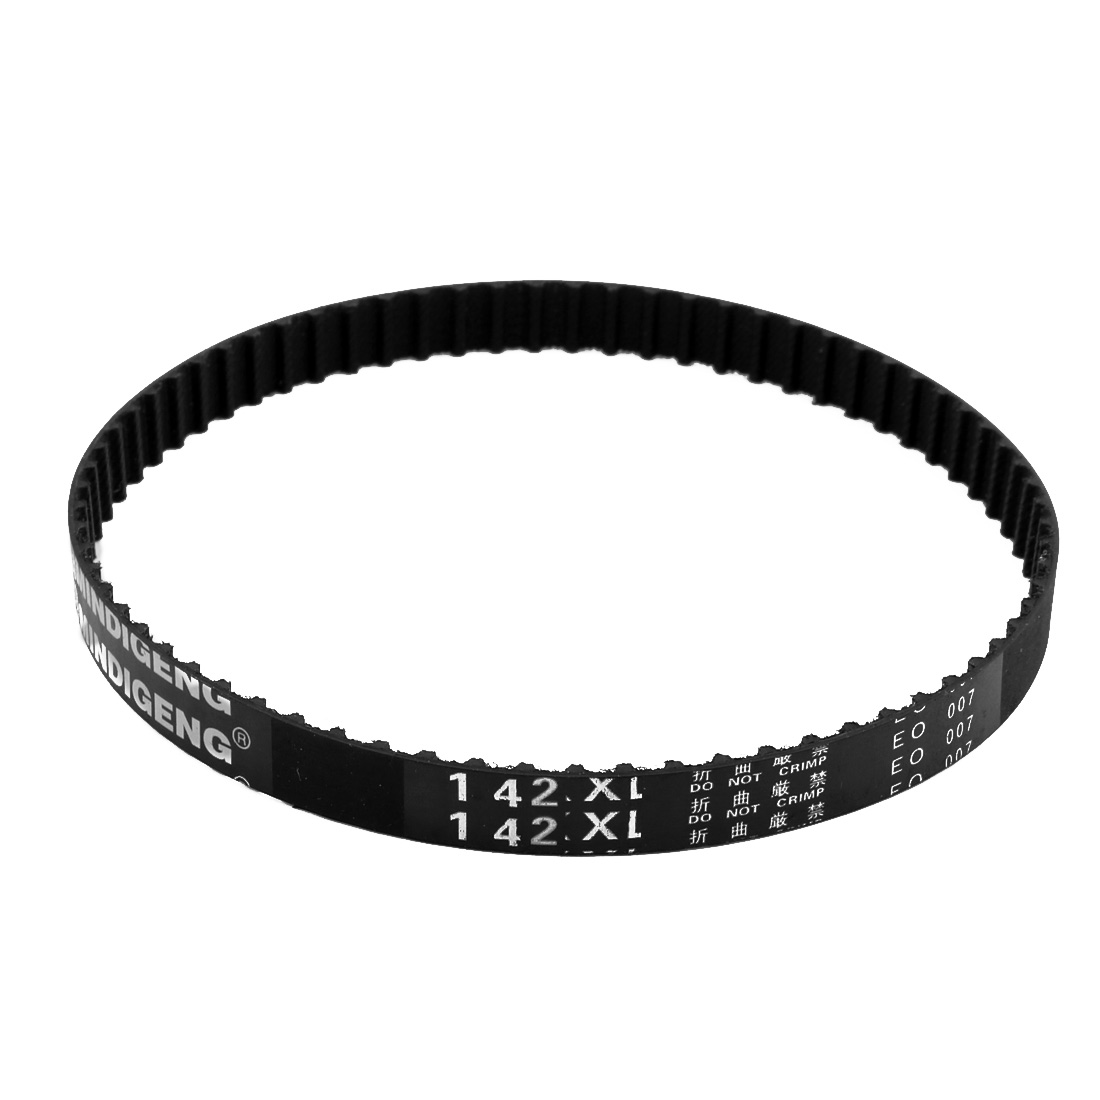 142XL 71 Teeth 10mm x 5.08mm Rubber Timing Geared Belt for Stepper Motor Black